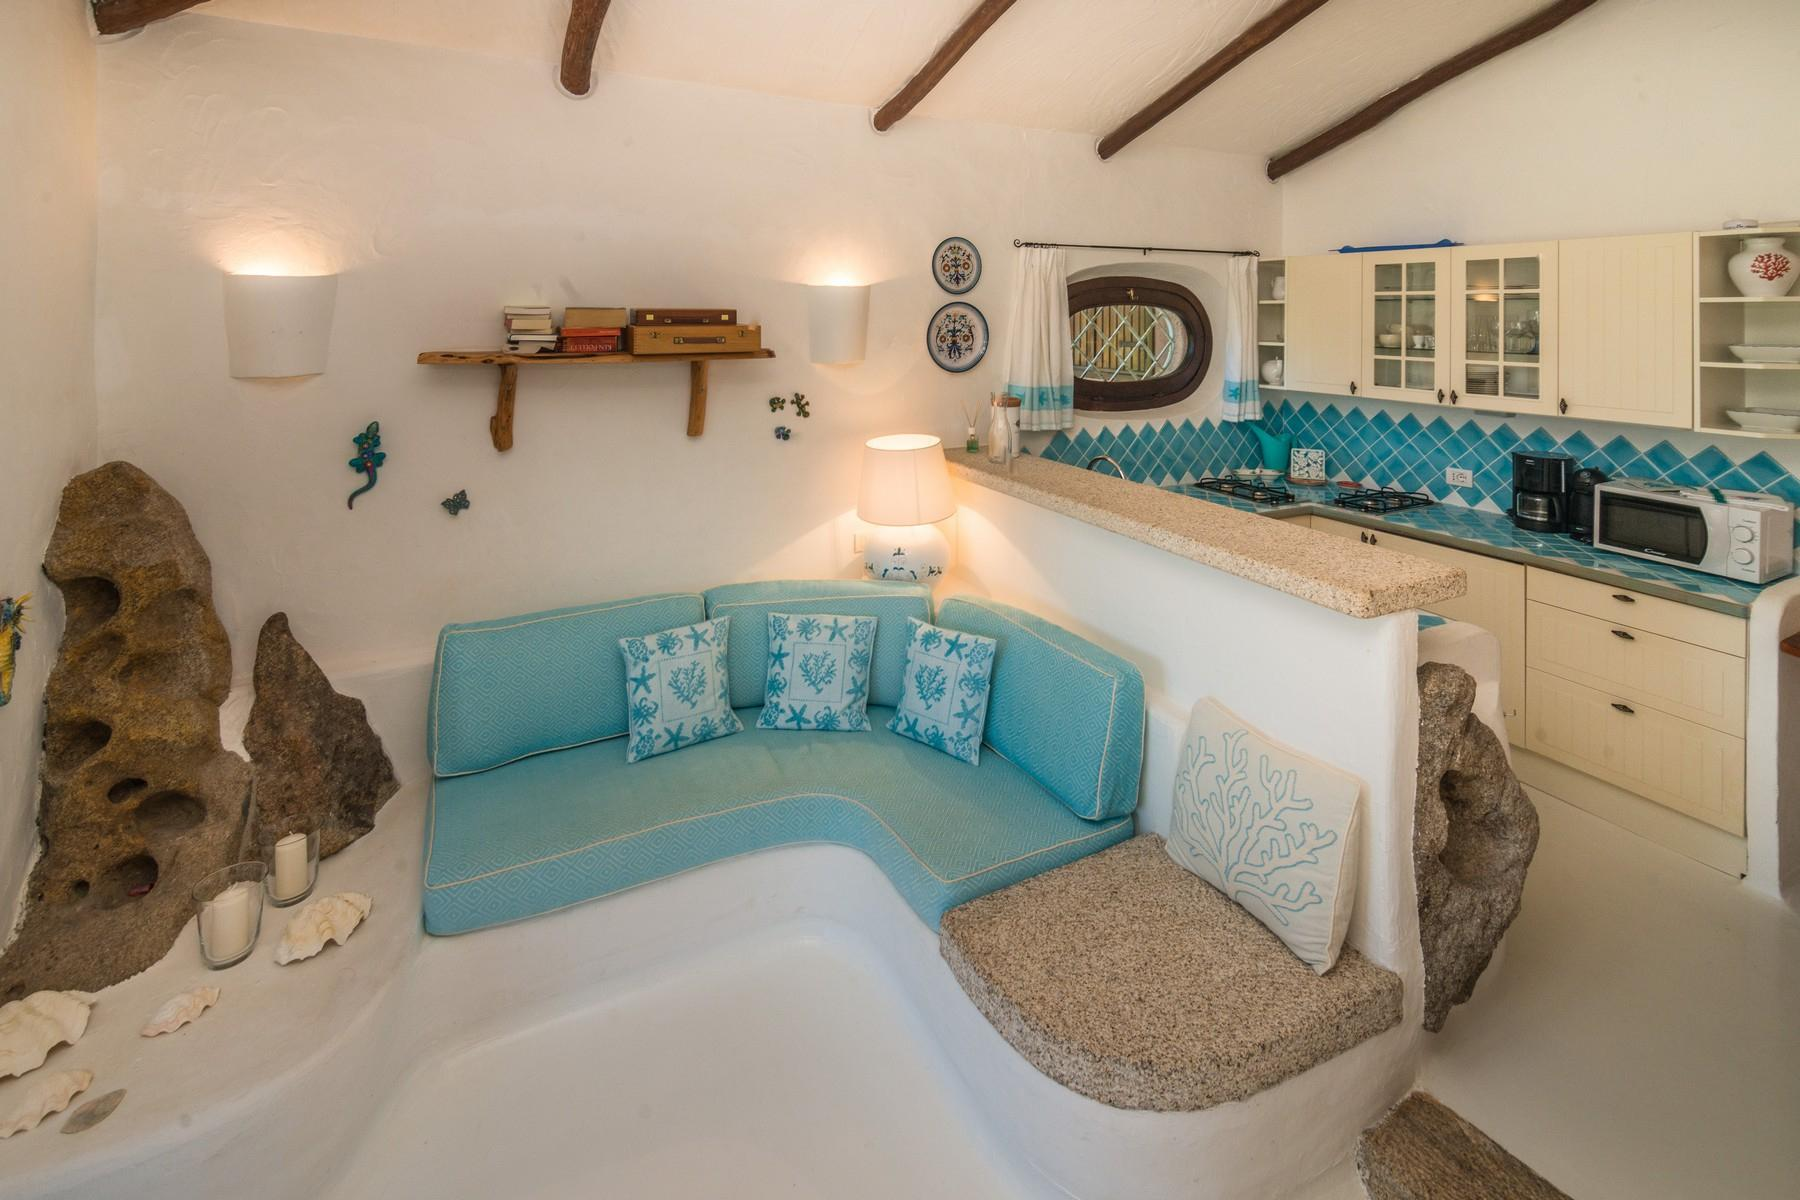 Baja Sardinia Mucchi Bianchi Delightful house with sea views - 8